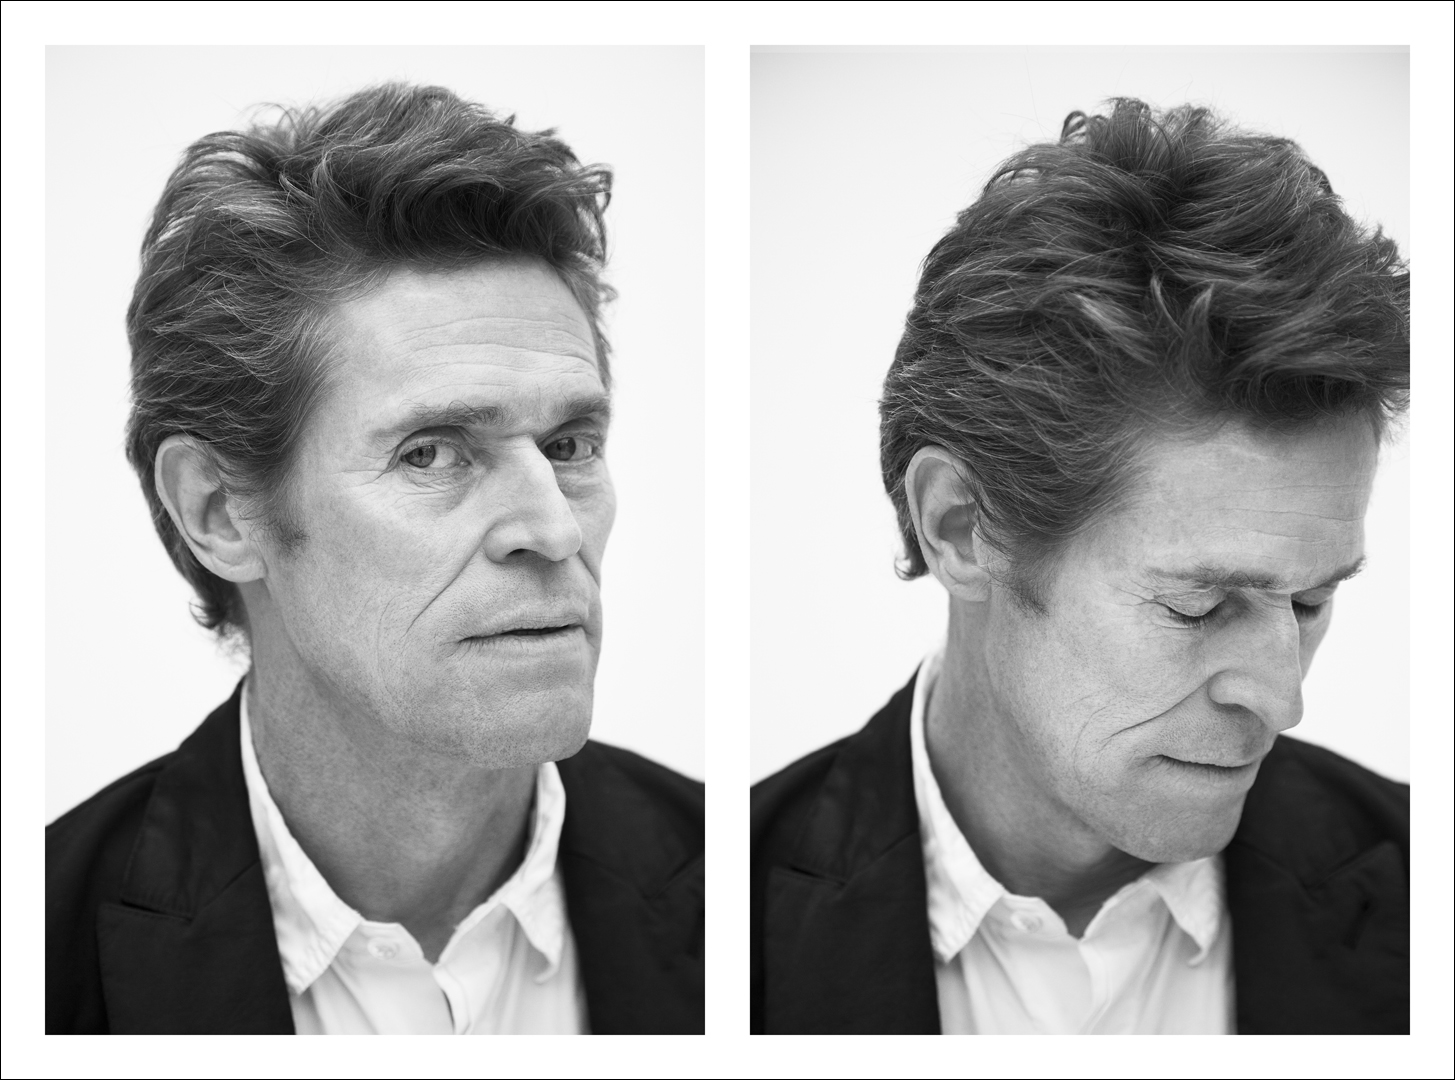 15_TIM_BARBER_WILLEM_DAFOE.jpg